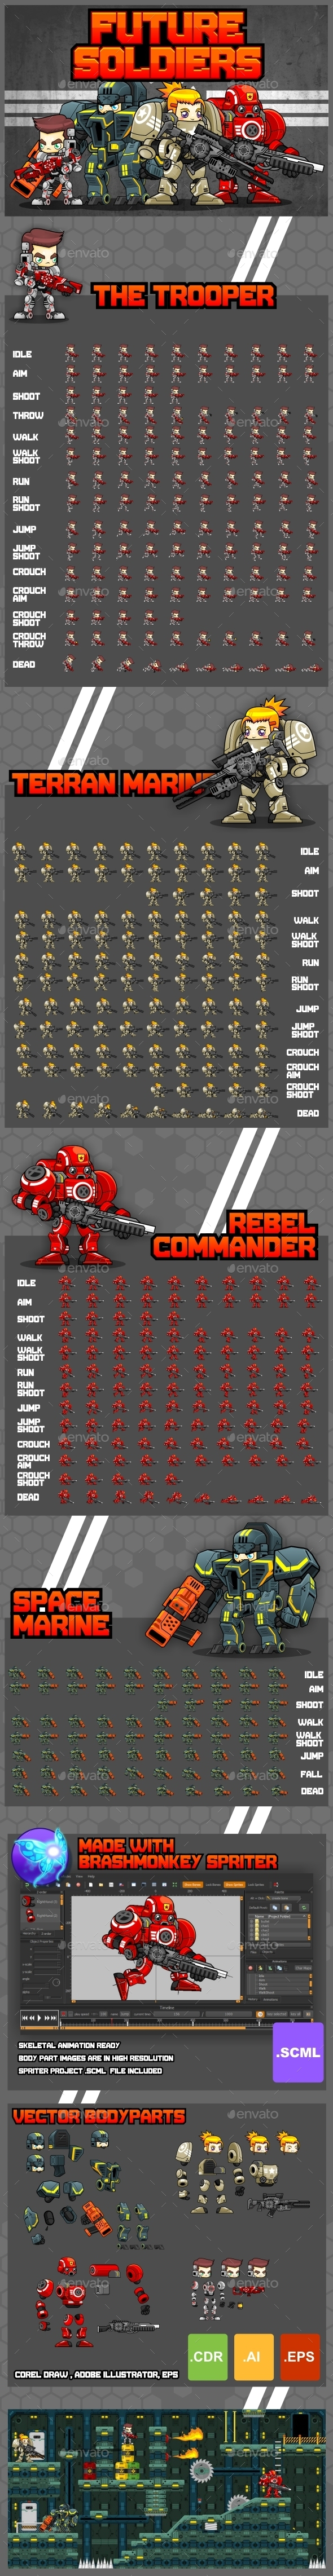 Future Soldiers - Game Sprites - Sprites Game Assets